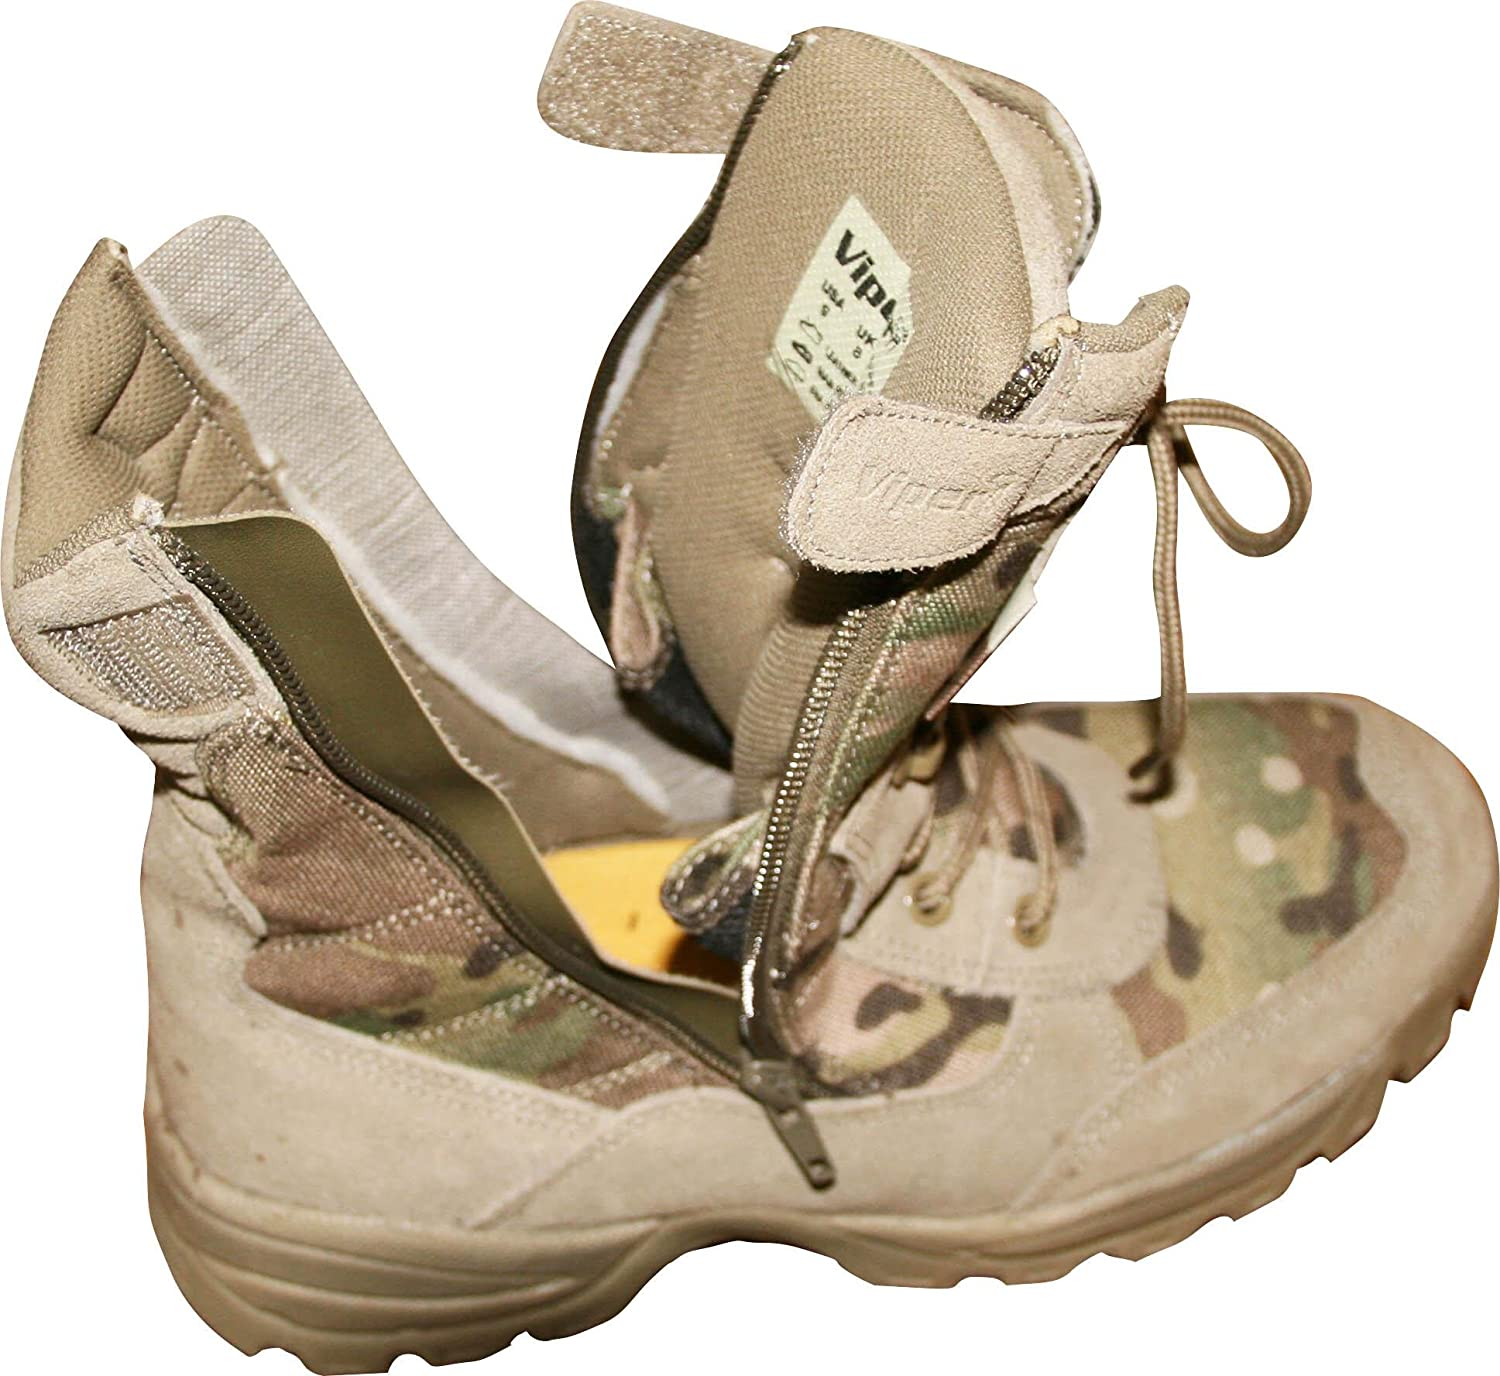 Genuine Multicam Cordura Side Zip and Laces Special Ops Tactical Combat Boot  (UK 8): Amazon.co.uk: Shoes & Bags